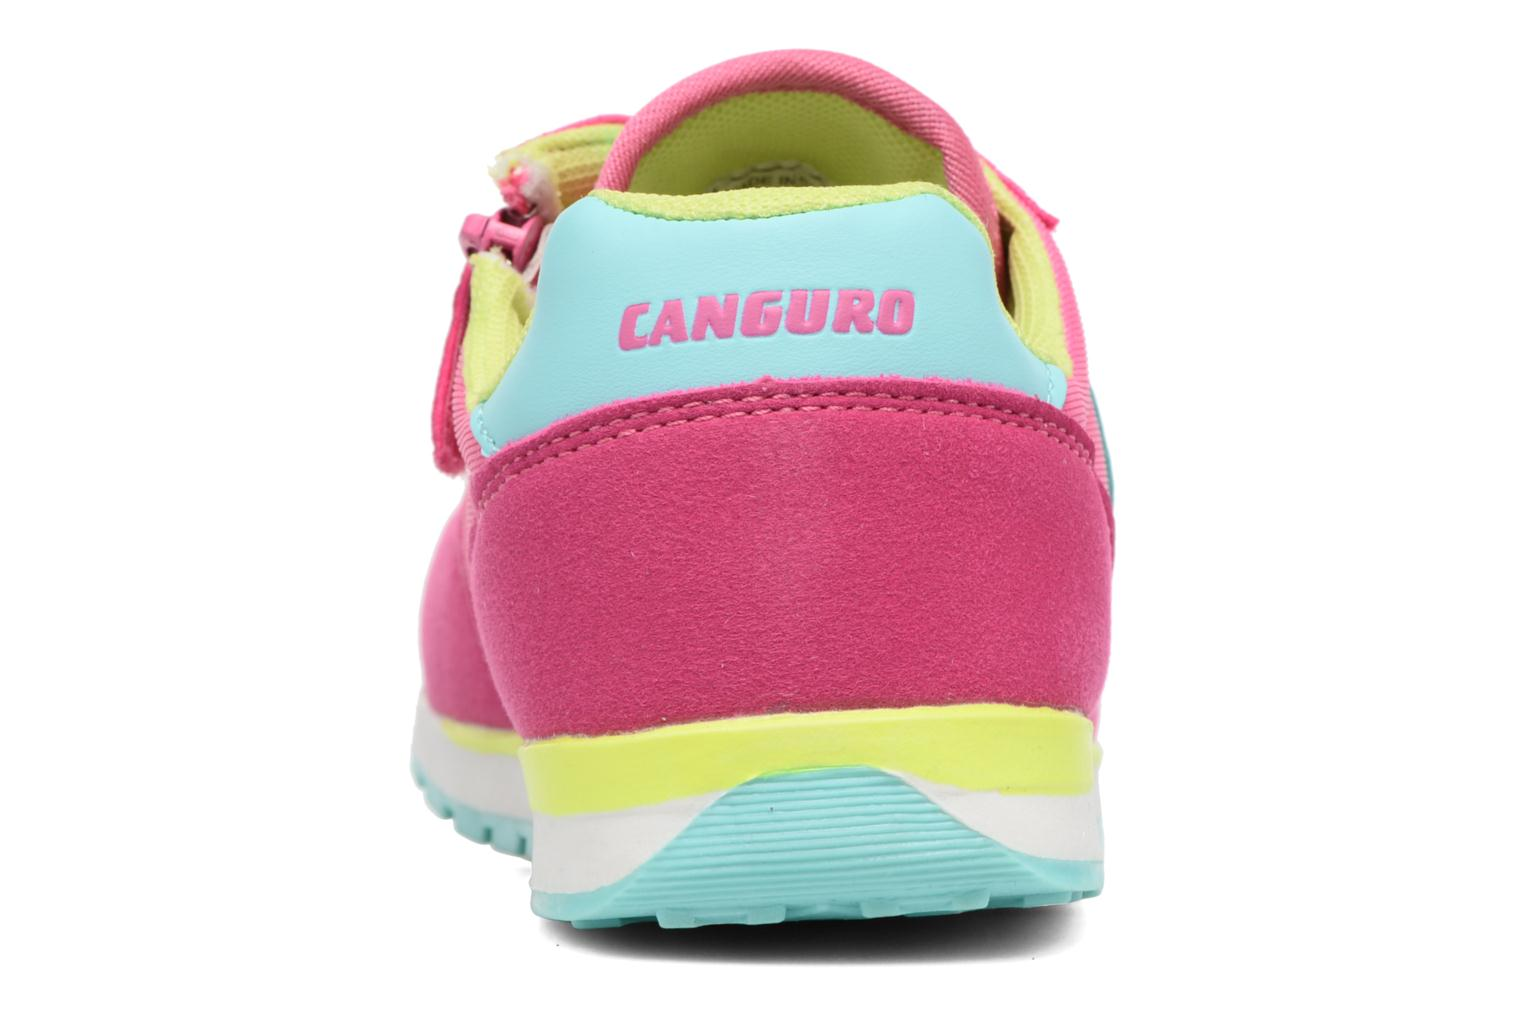 Baskets Canguro Boy/Girl'S Casual Shoes Size Rose vue droite